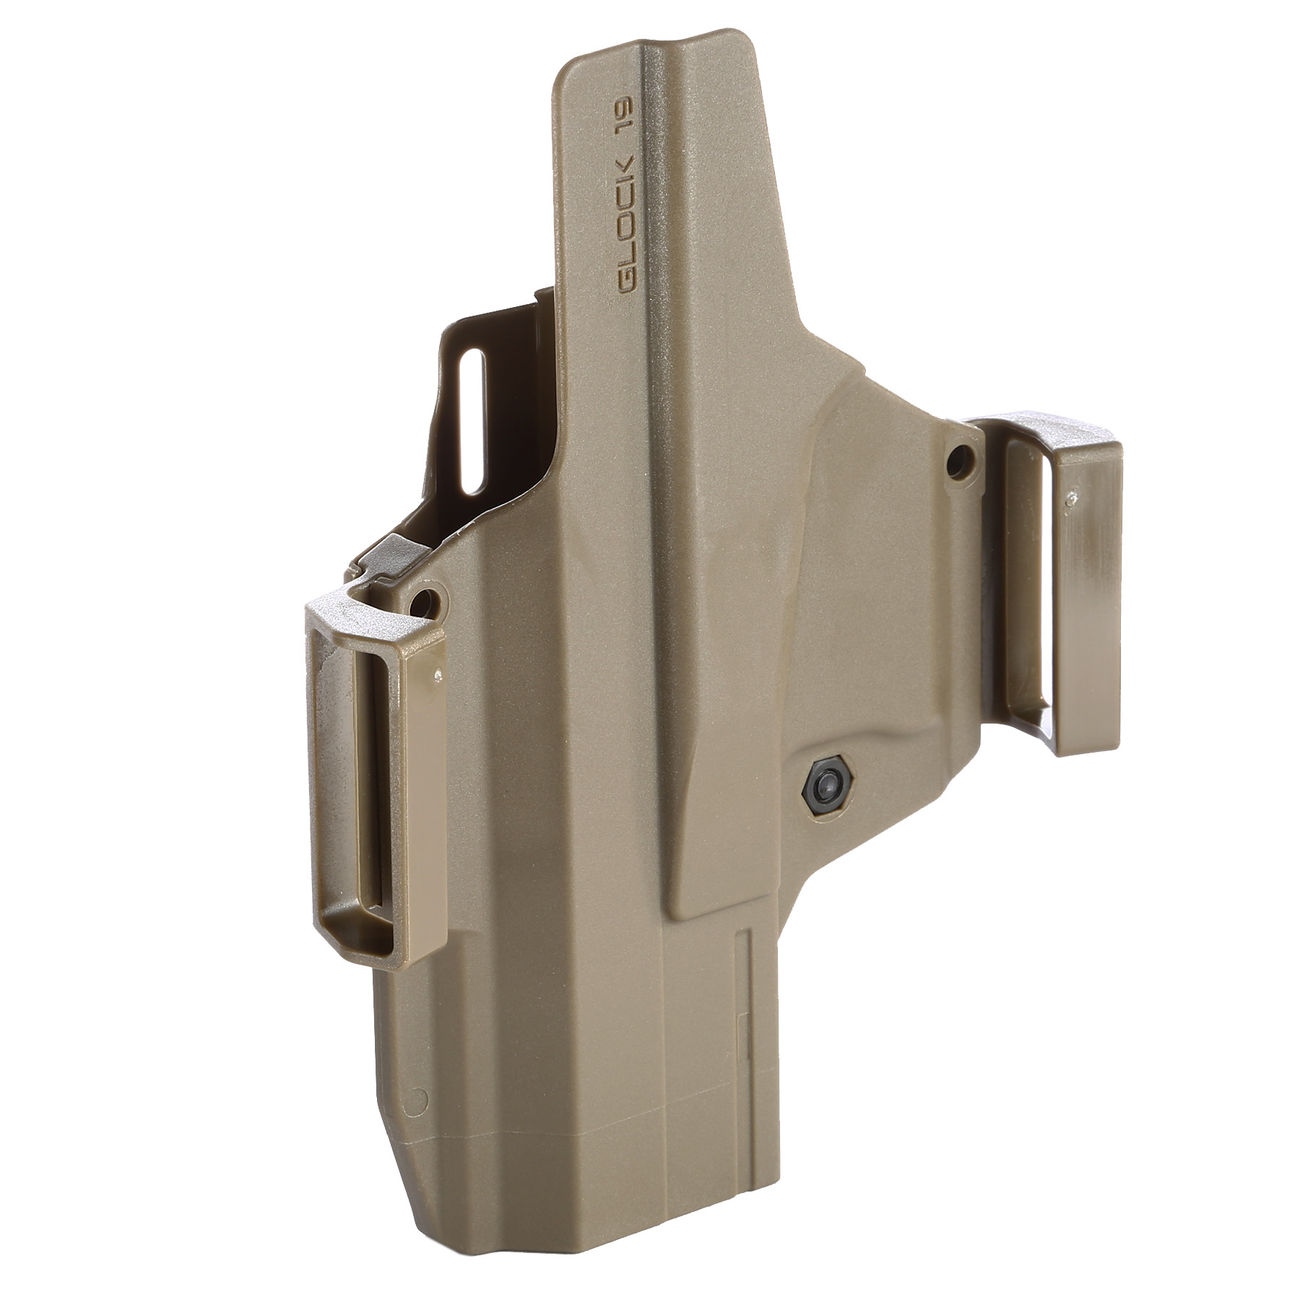 IMI Defense MORF X3 Polymer Holster IWB / OWB / Paddle für Glock 19 Rechts / Links Tan 5